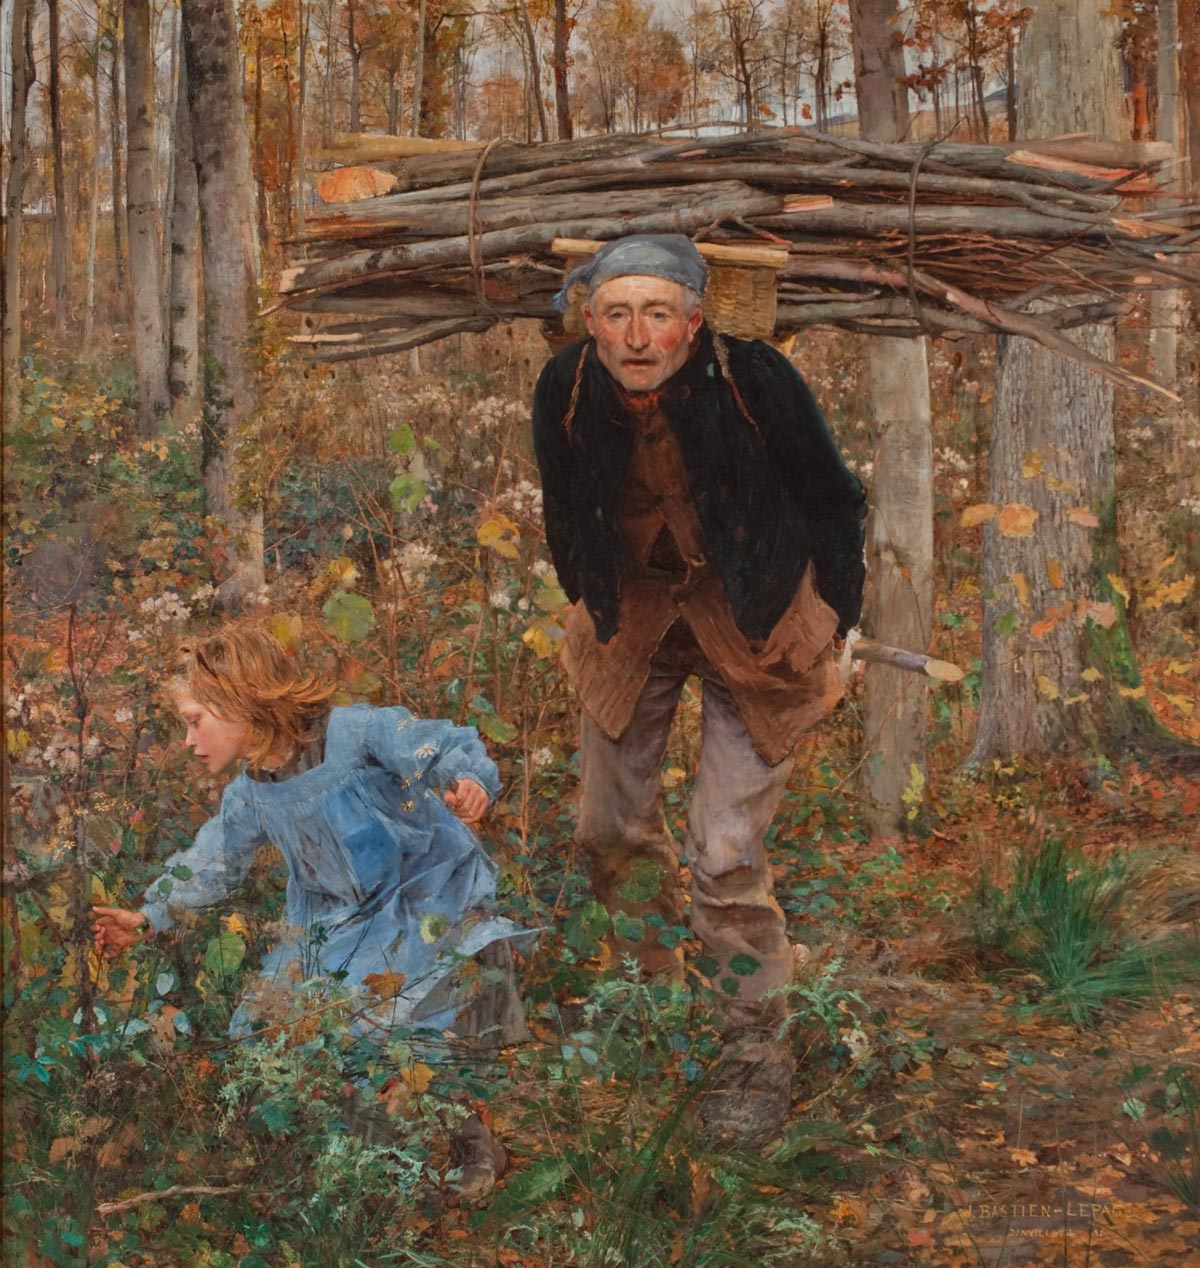 Older man with wood on his back and a little child running in front